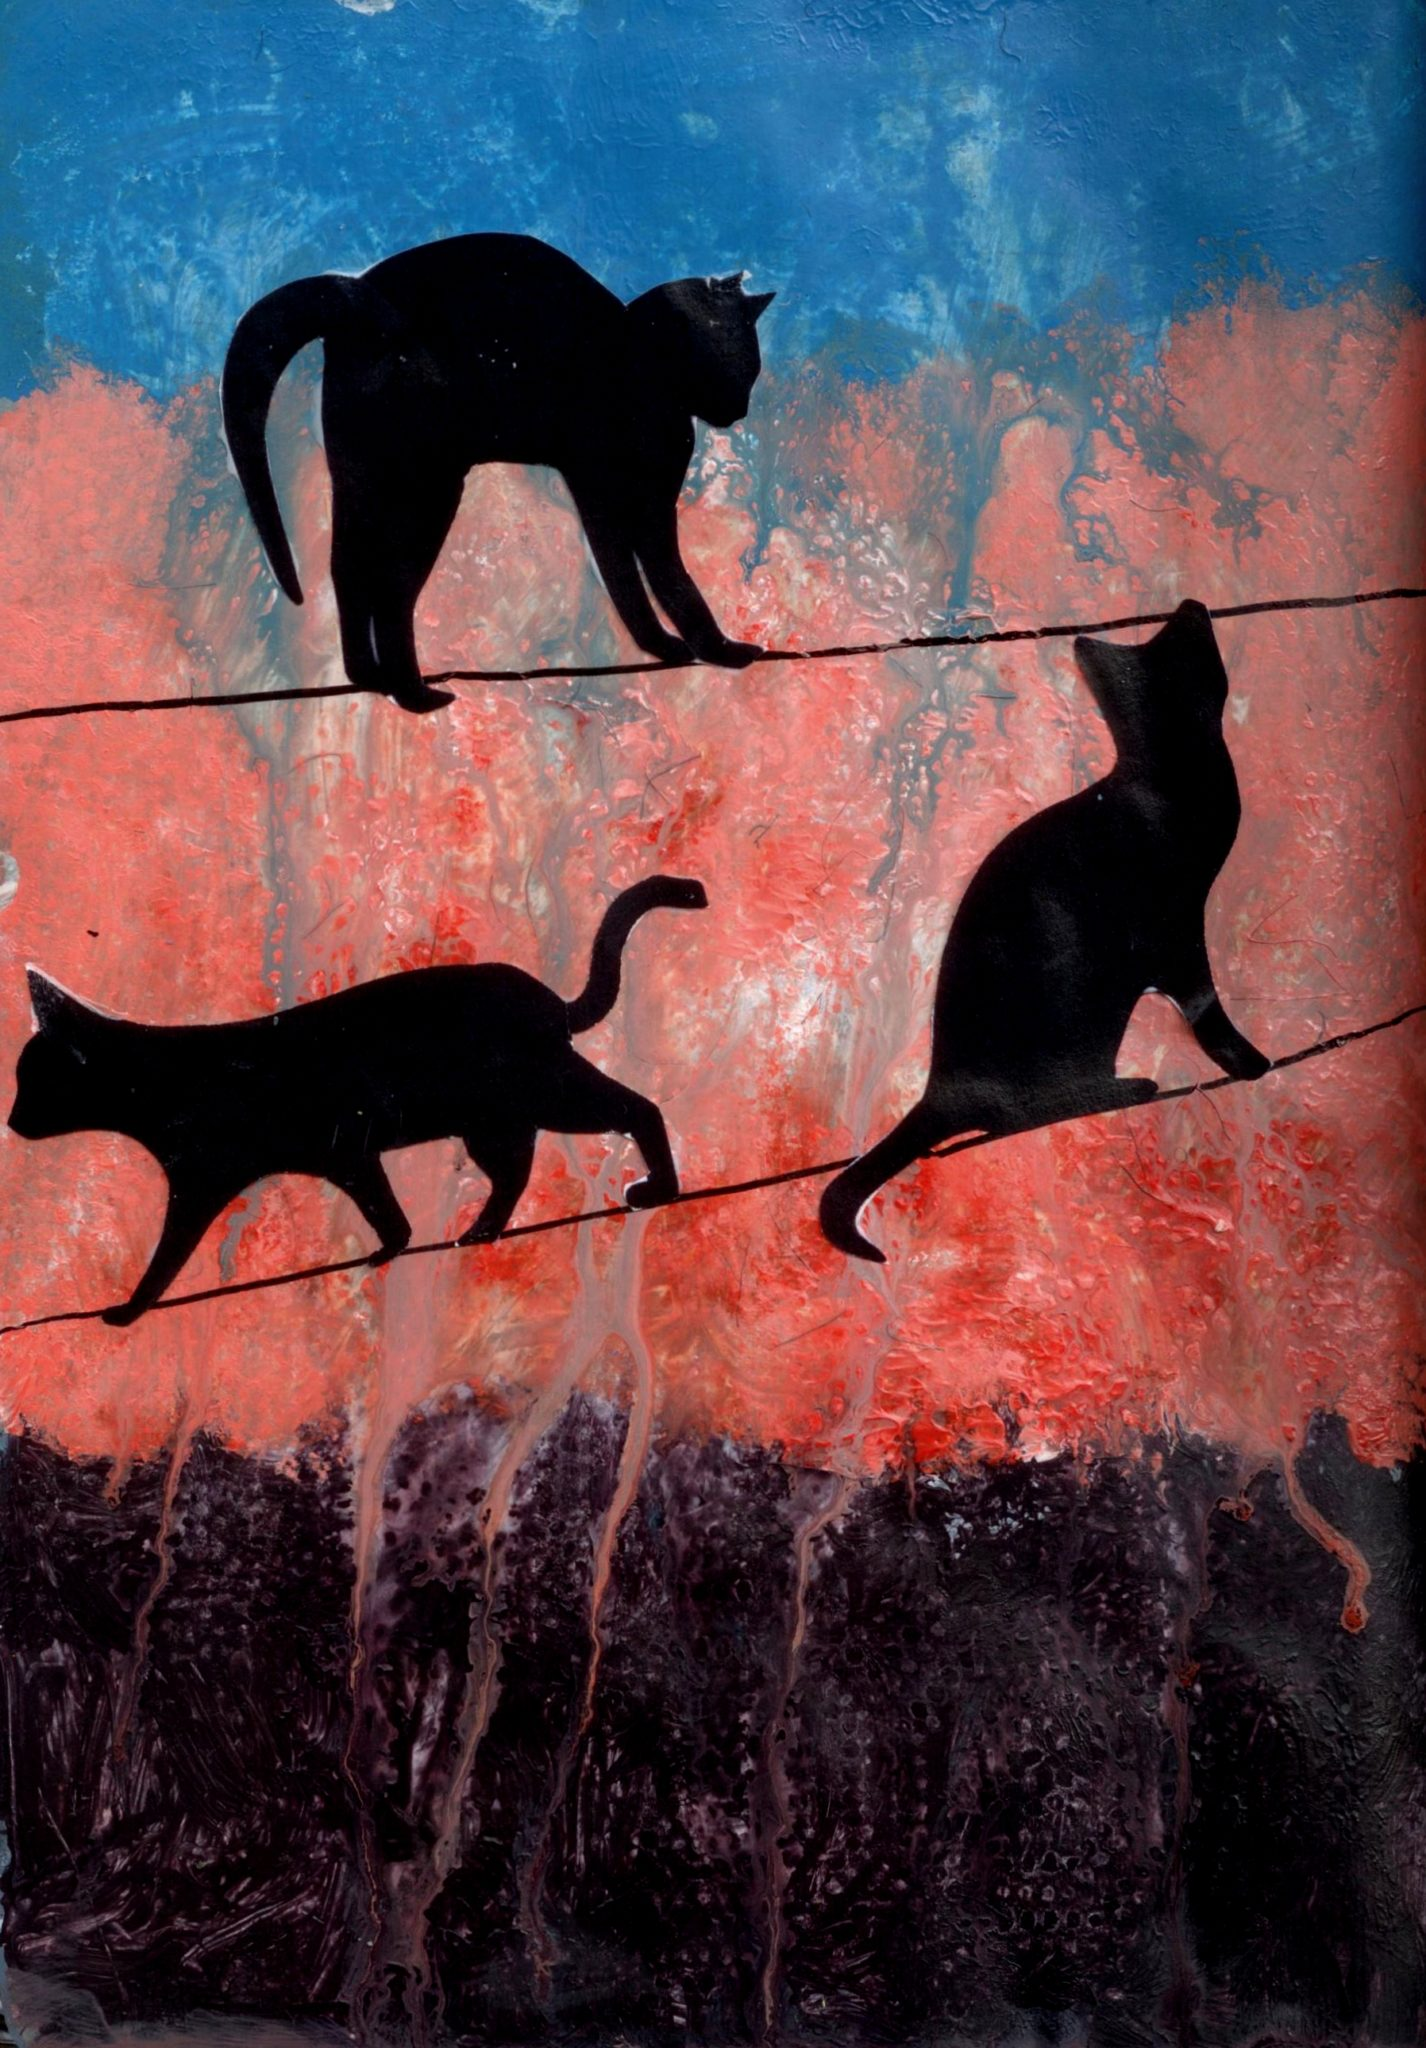 Cats on a Wire, mixed media collage by Courtney Putnam